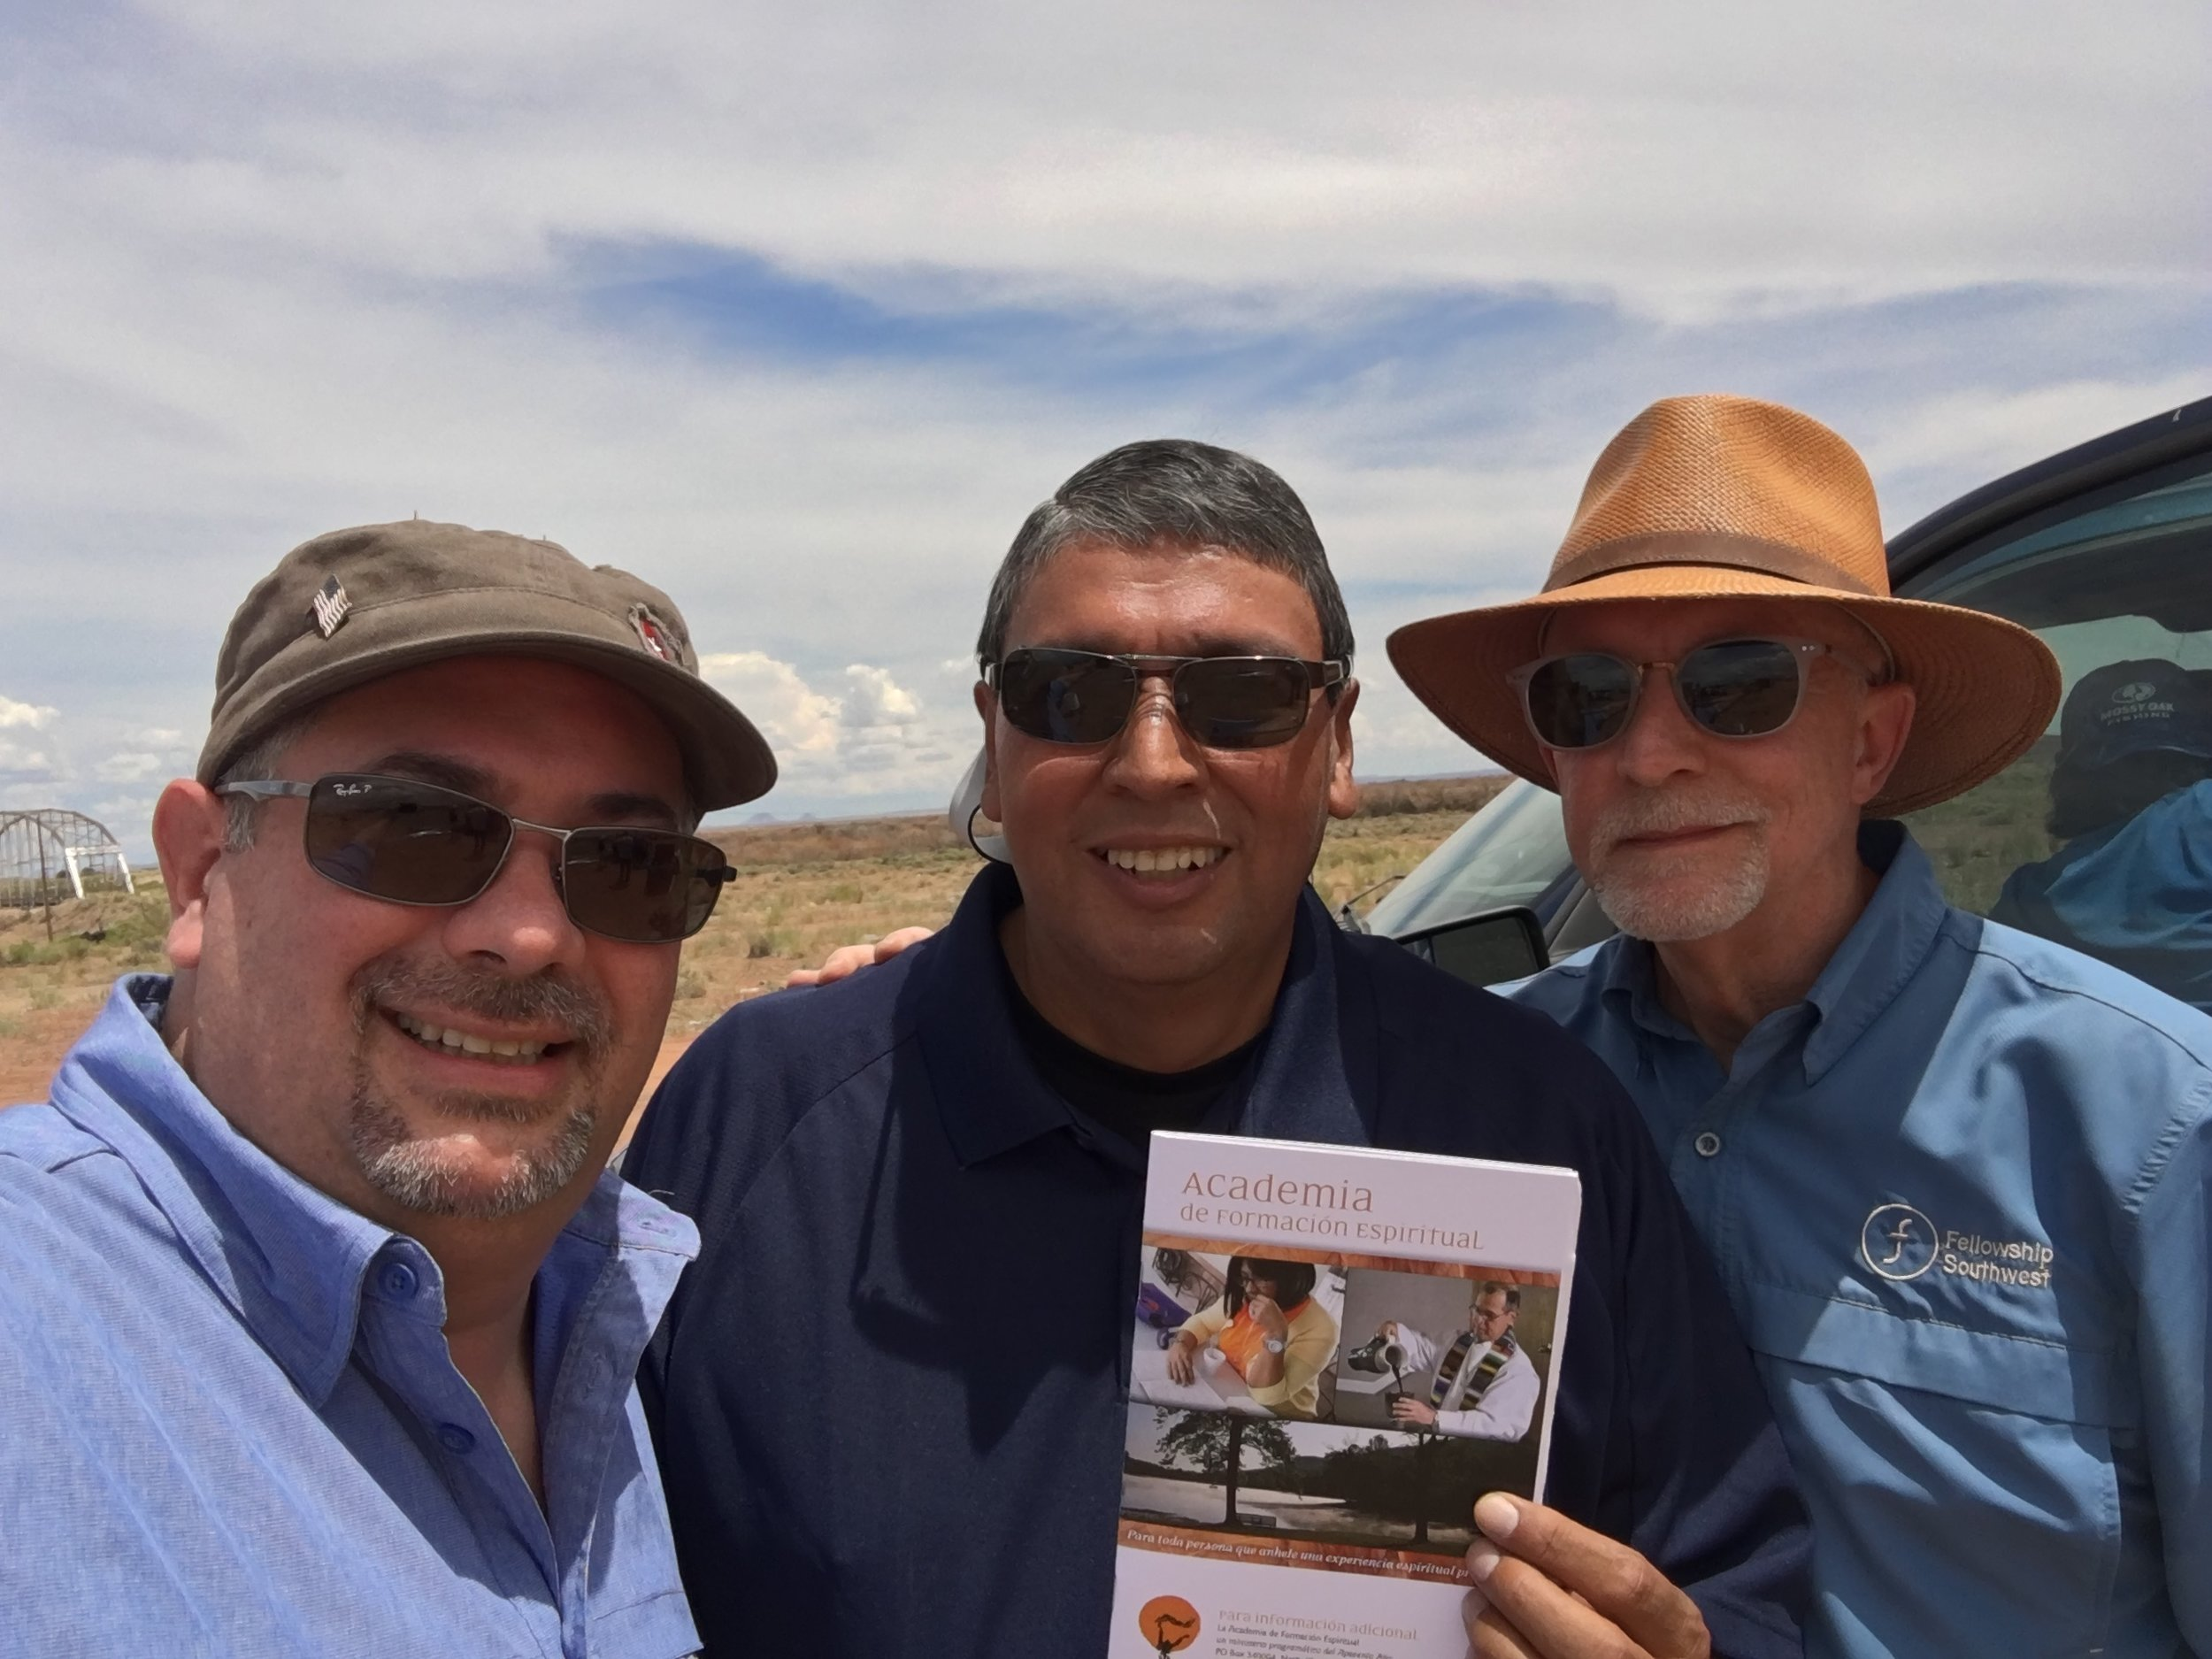 Marv Knox (right), pictured with friends on a trip to Arizona: Ruben Ortiz (left) and Jorge Zapata (center).